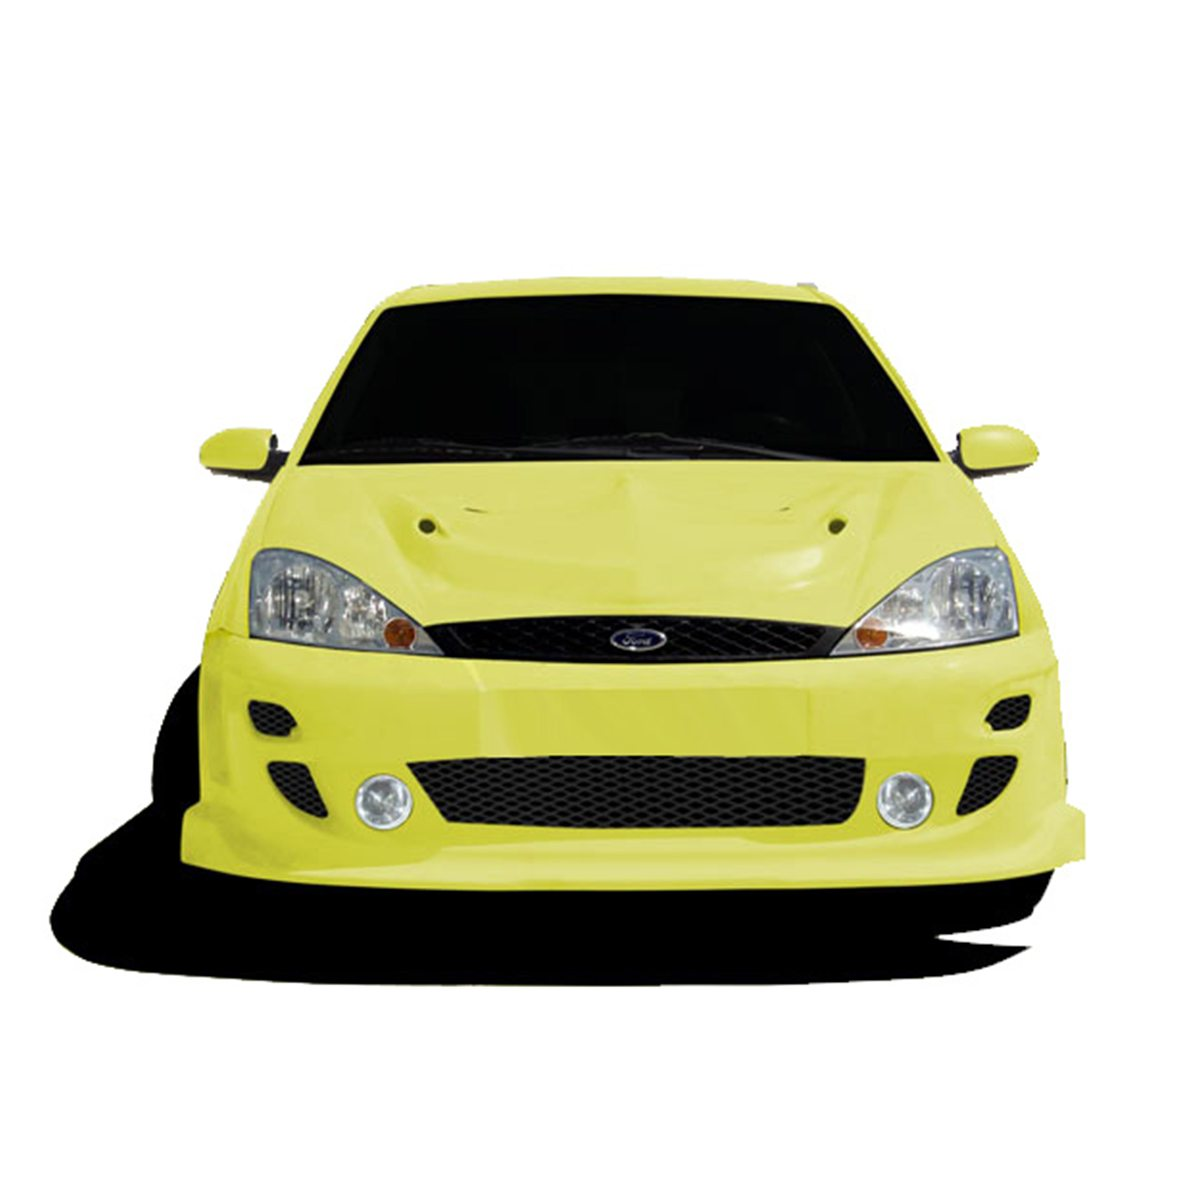 Ford-Focus-Eraser-frt-PCS083